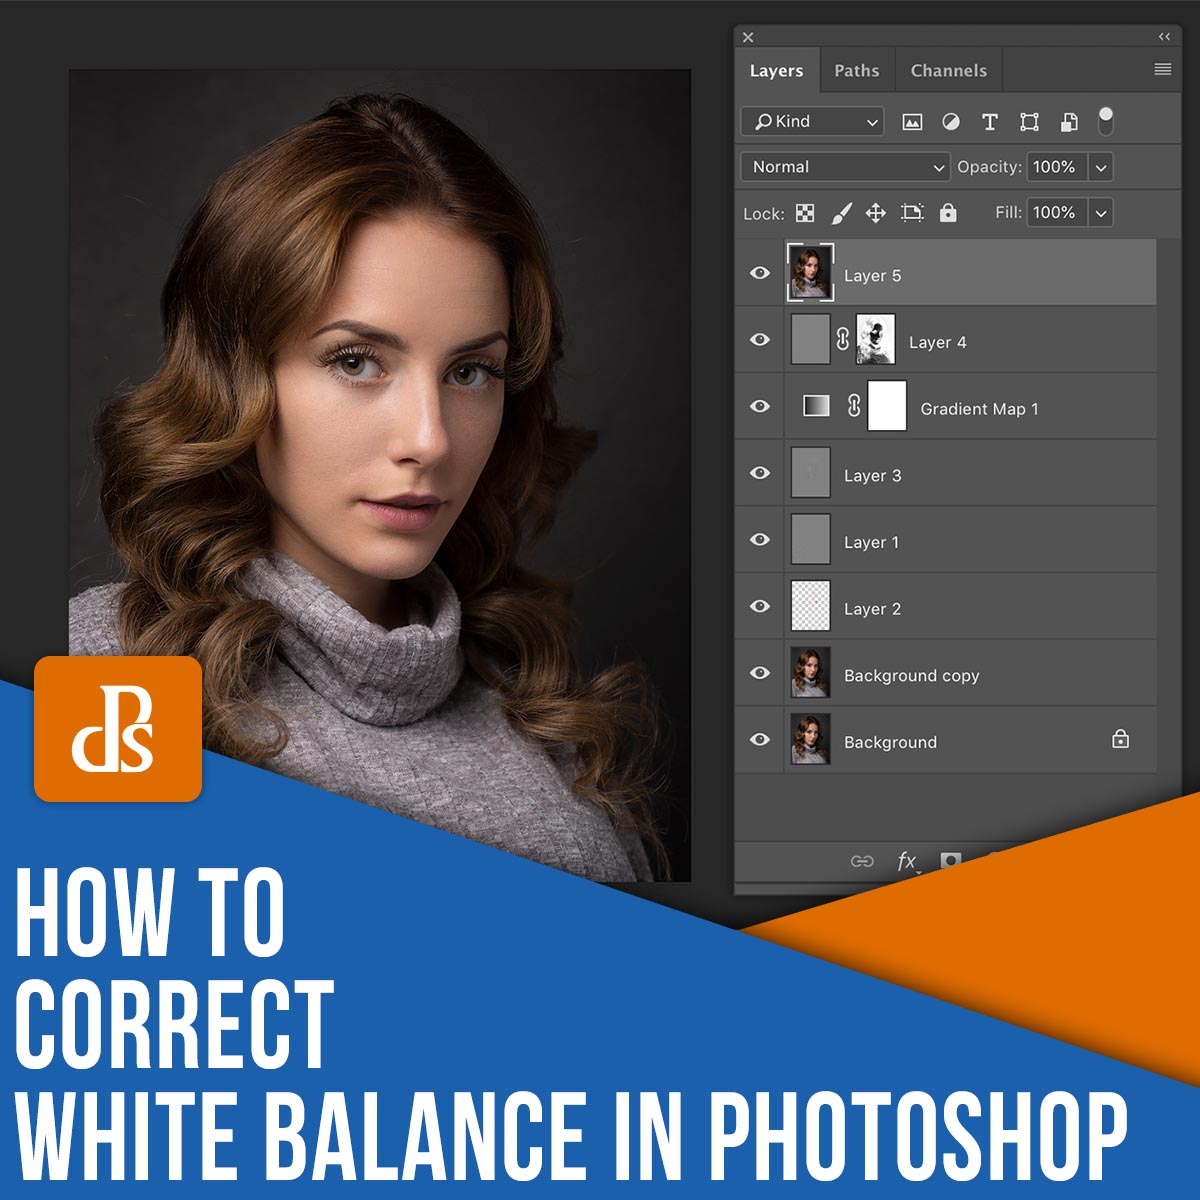 How to Correct White Balance in Photoshop: A Guide